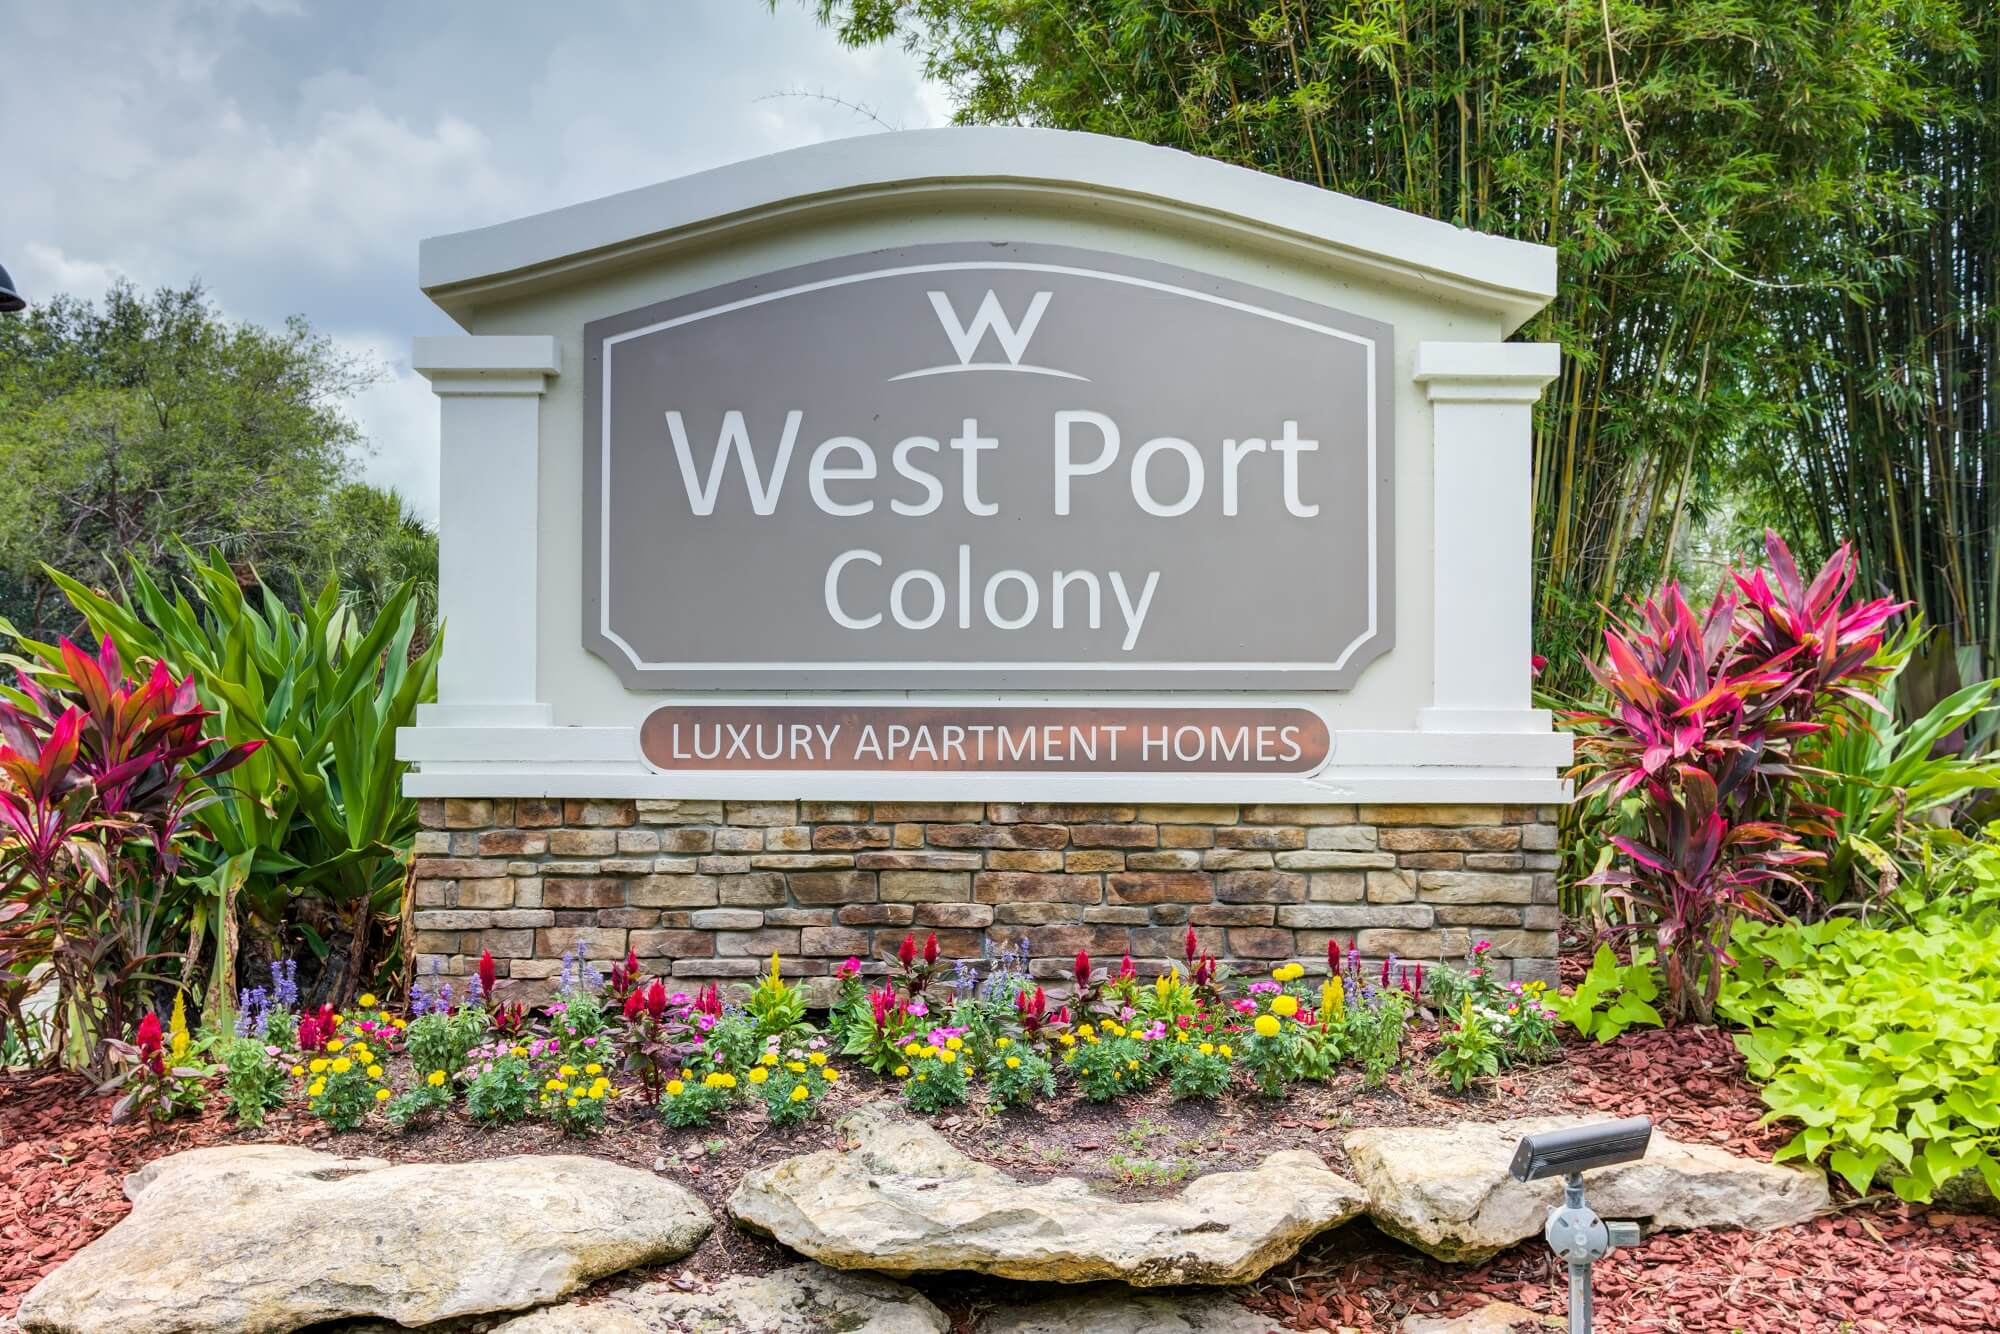 west port colony monument sign.